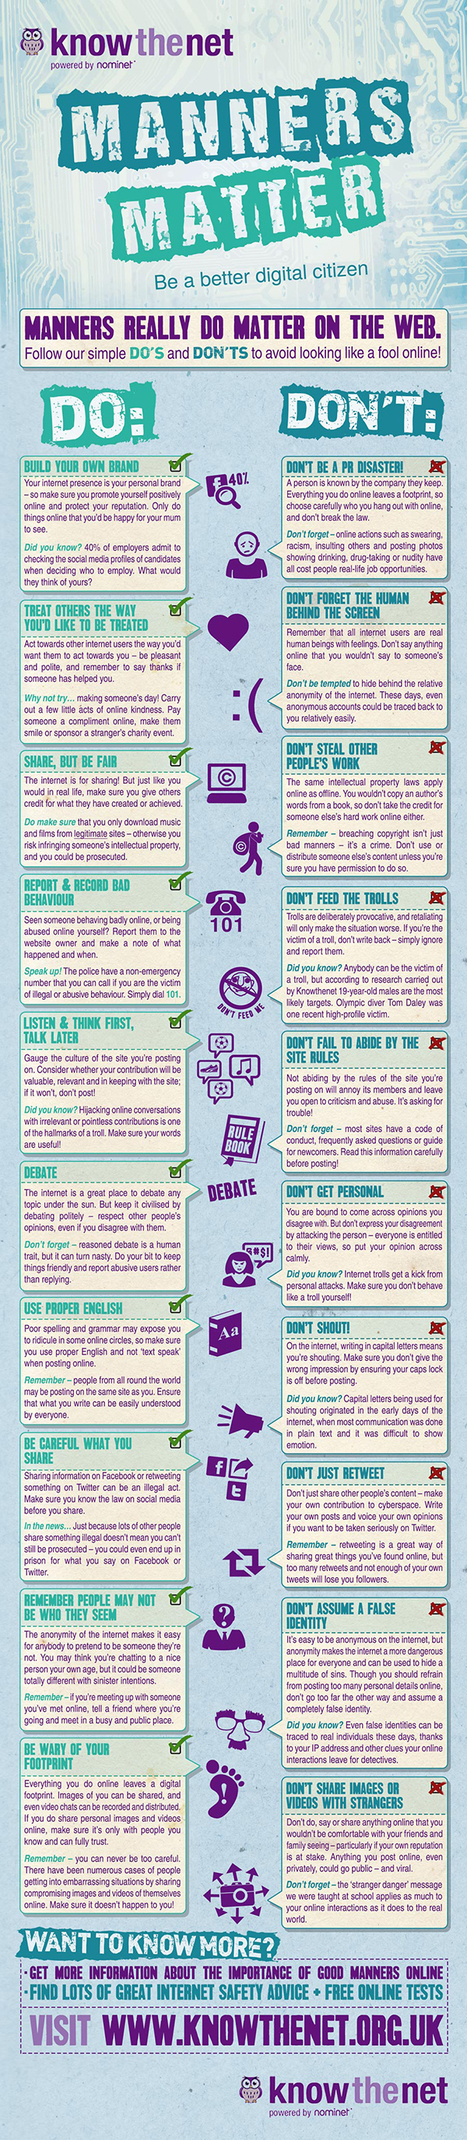 10 Excellent Digital Citizenship Tips for Your Students and Kids ~ Educational Technology and Mobile Learning | Technopédago | Scoop.it